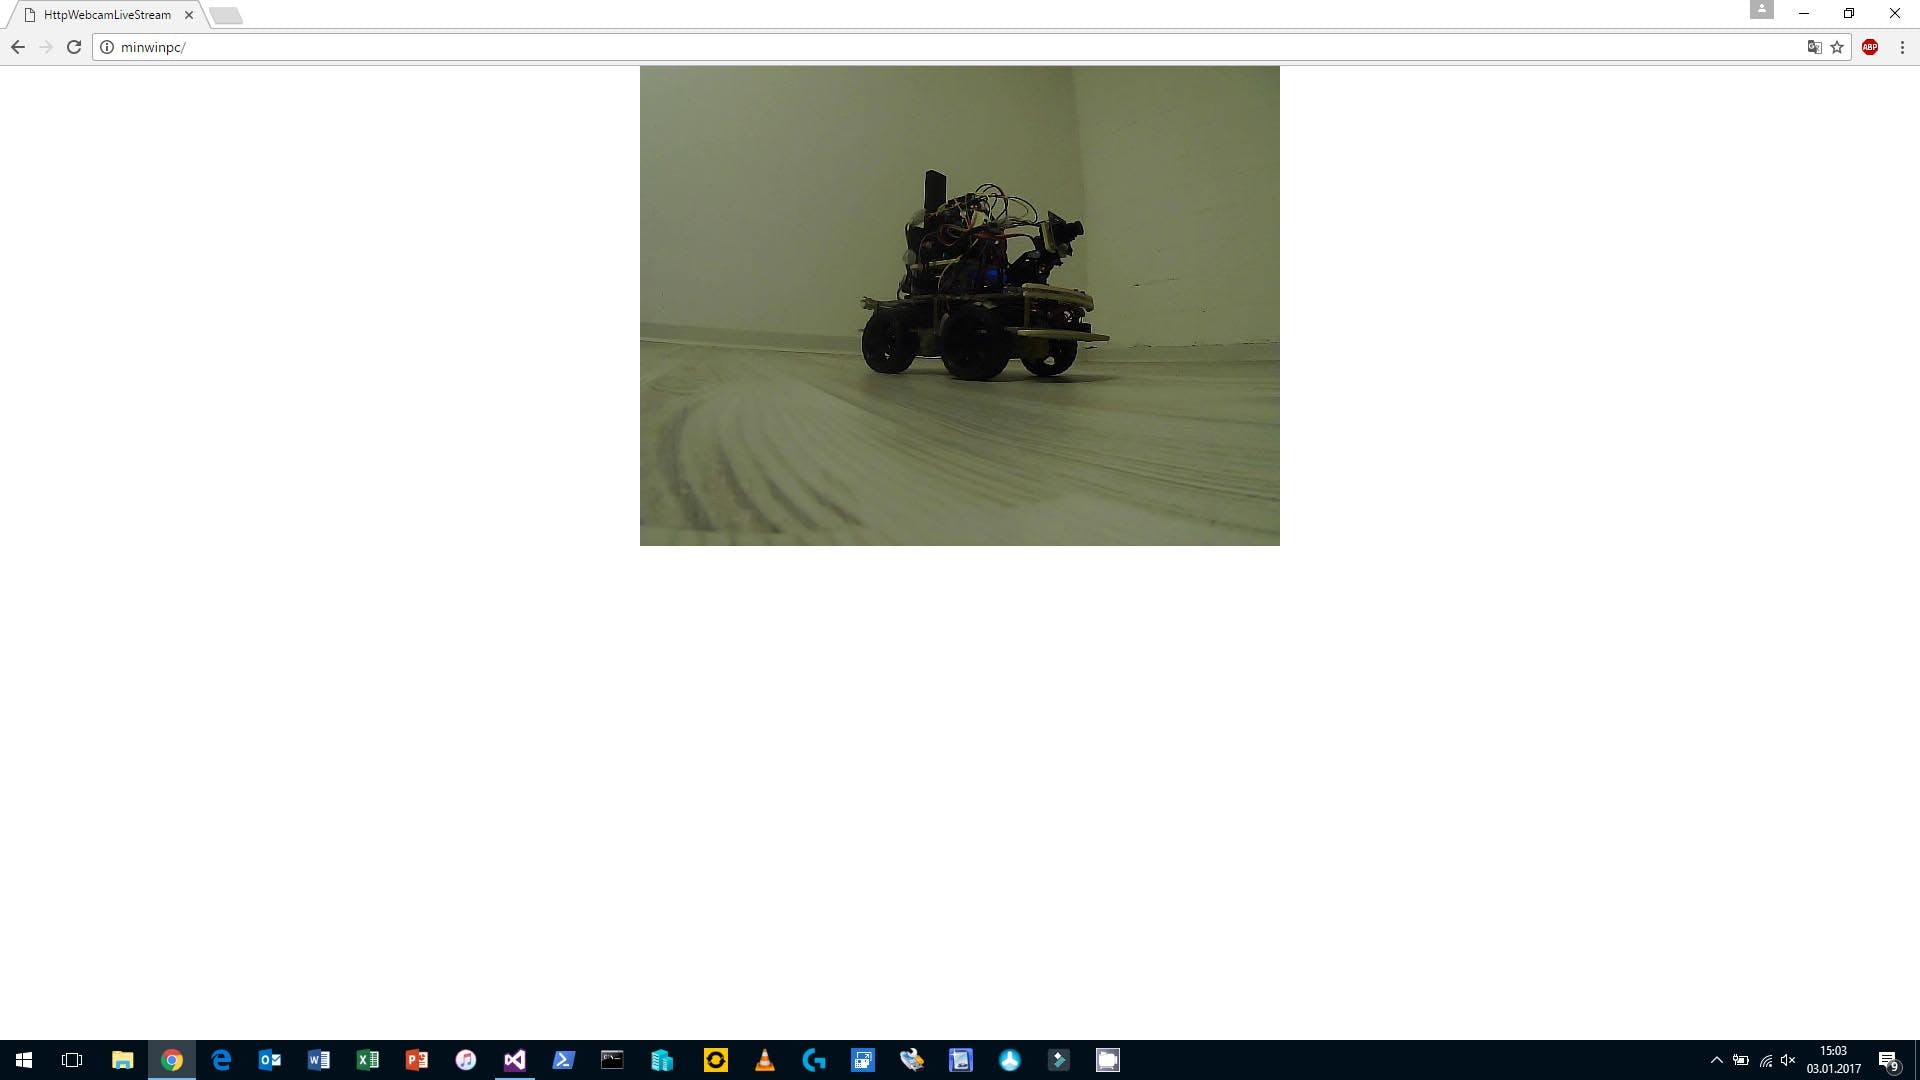 Webcam video with resolution (640x480 pixel)